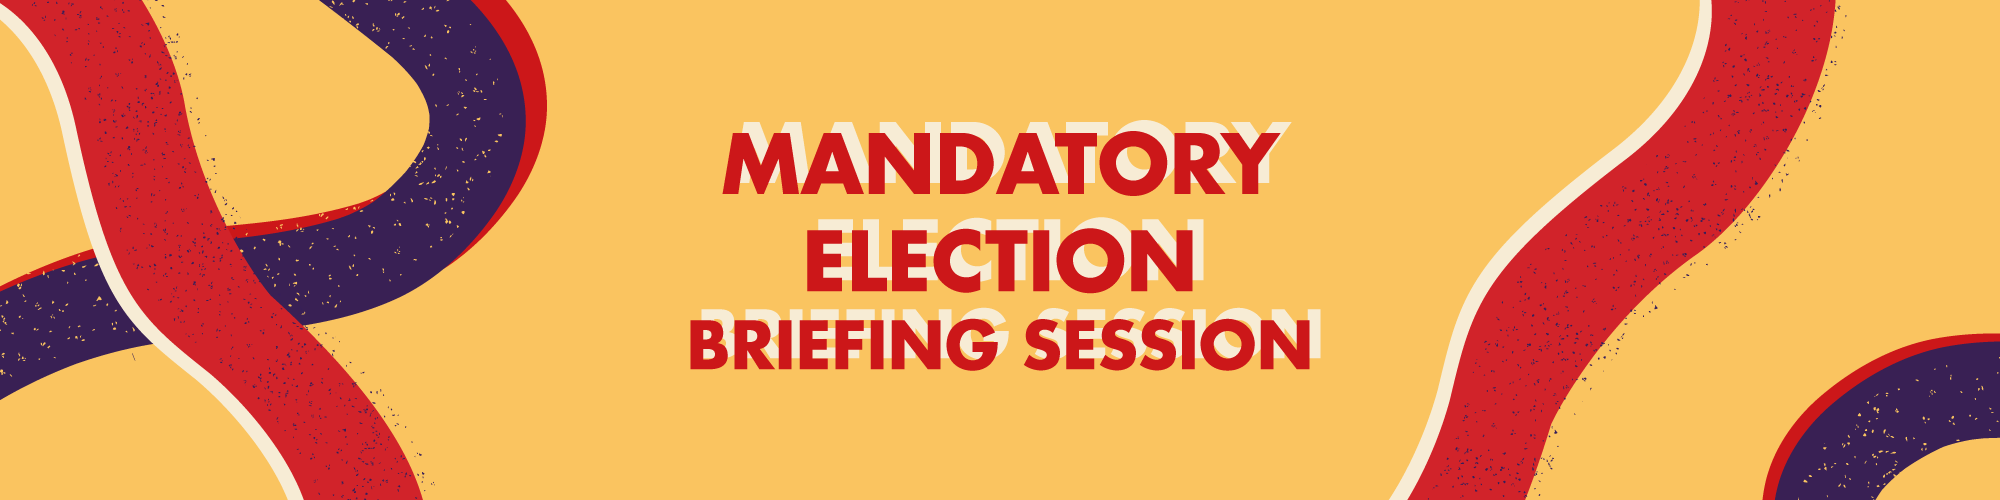 Mandatory Elections Briefing Session